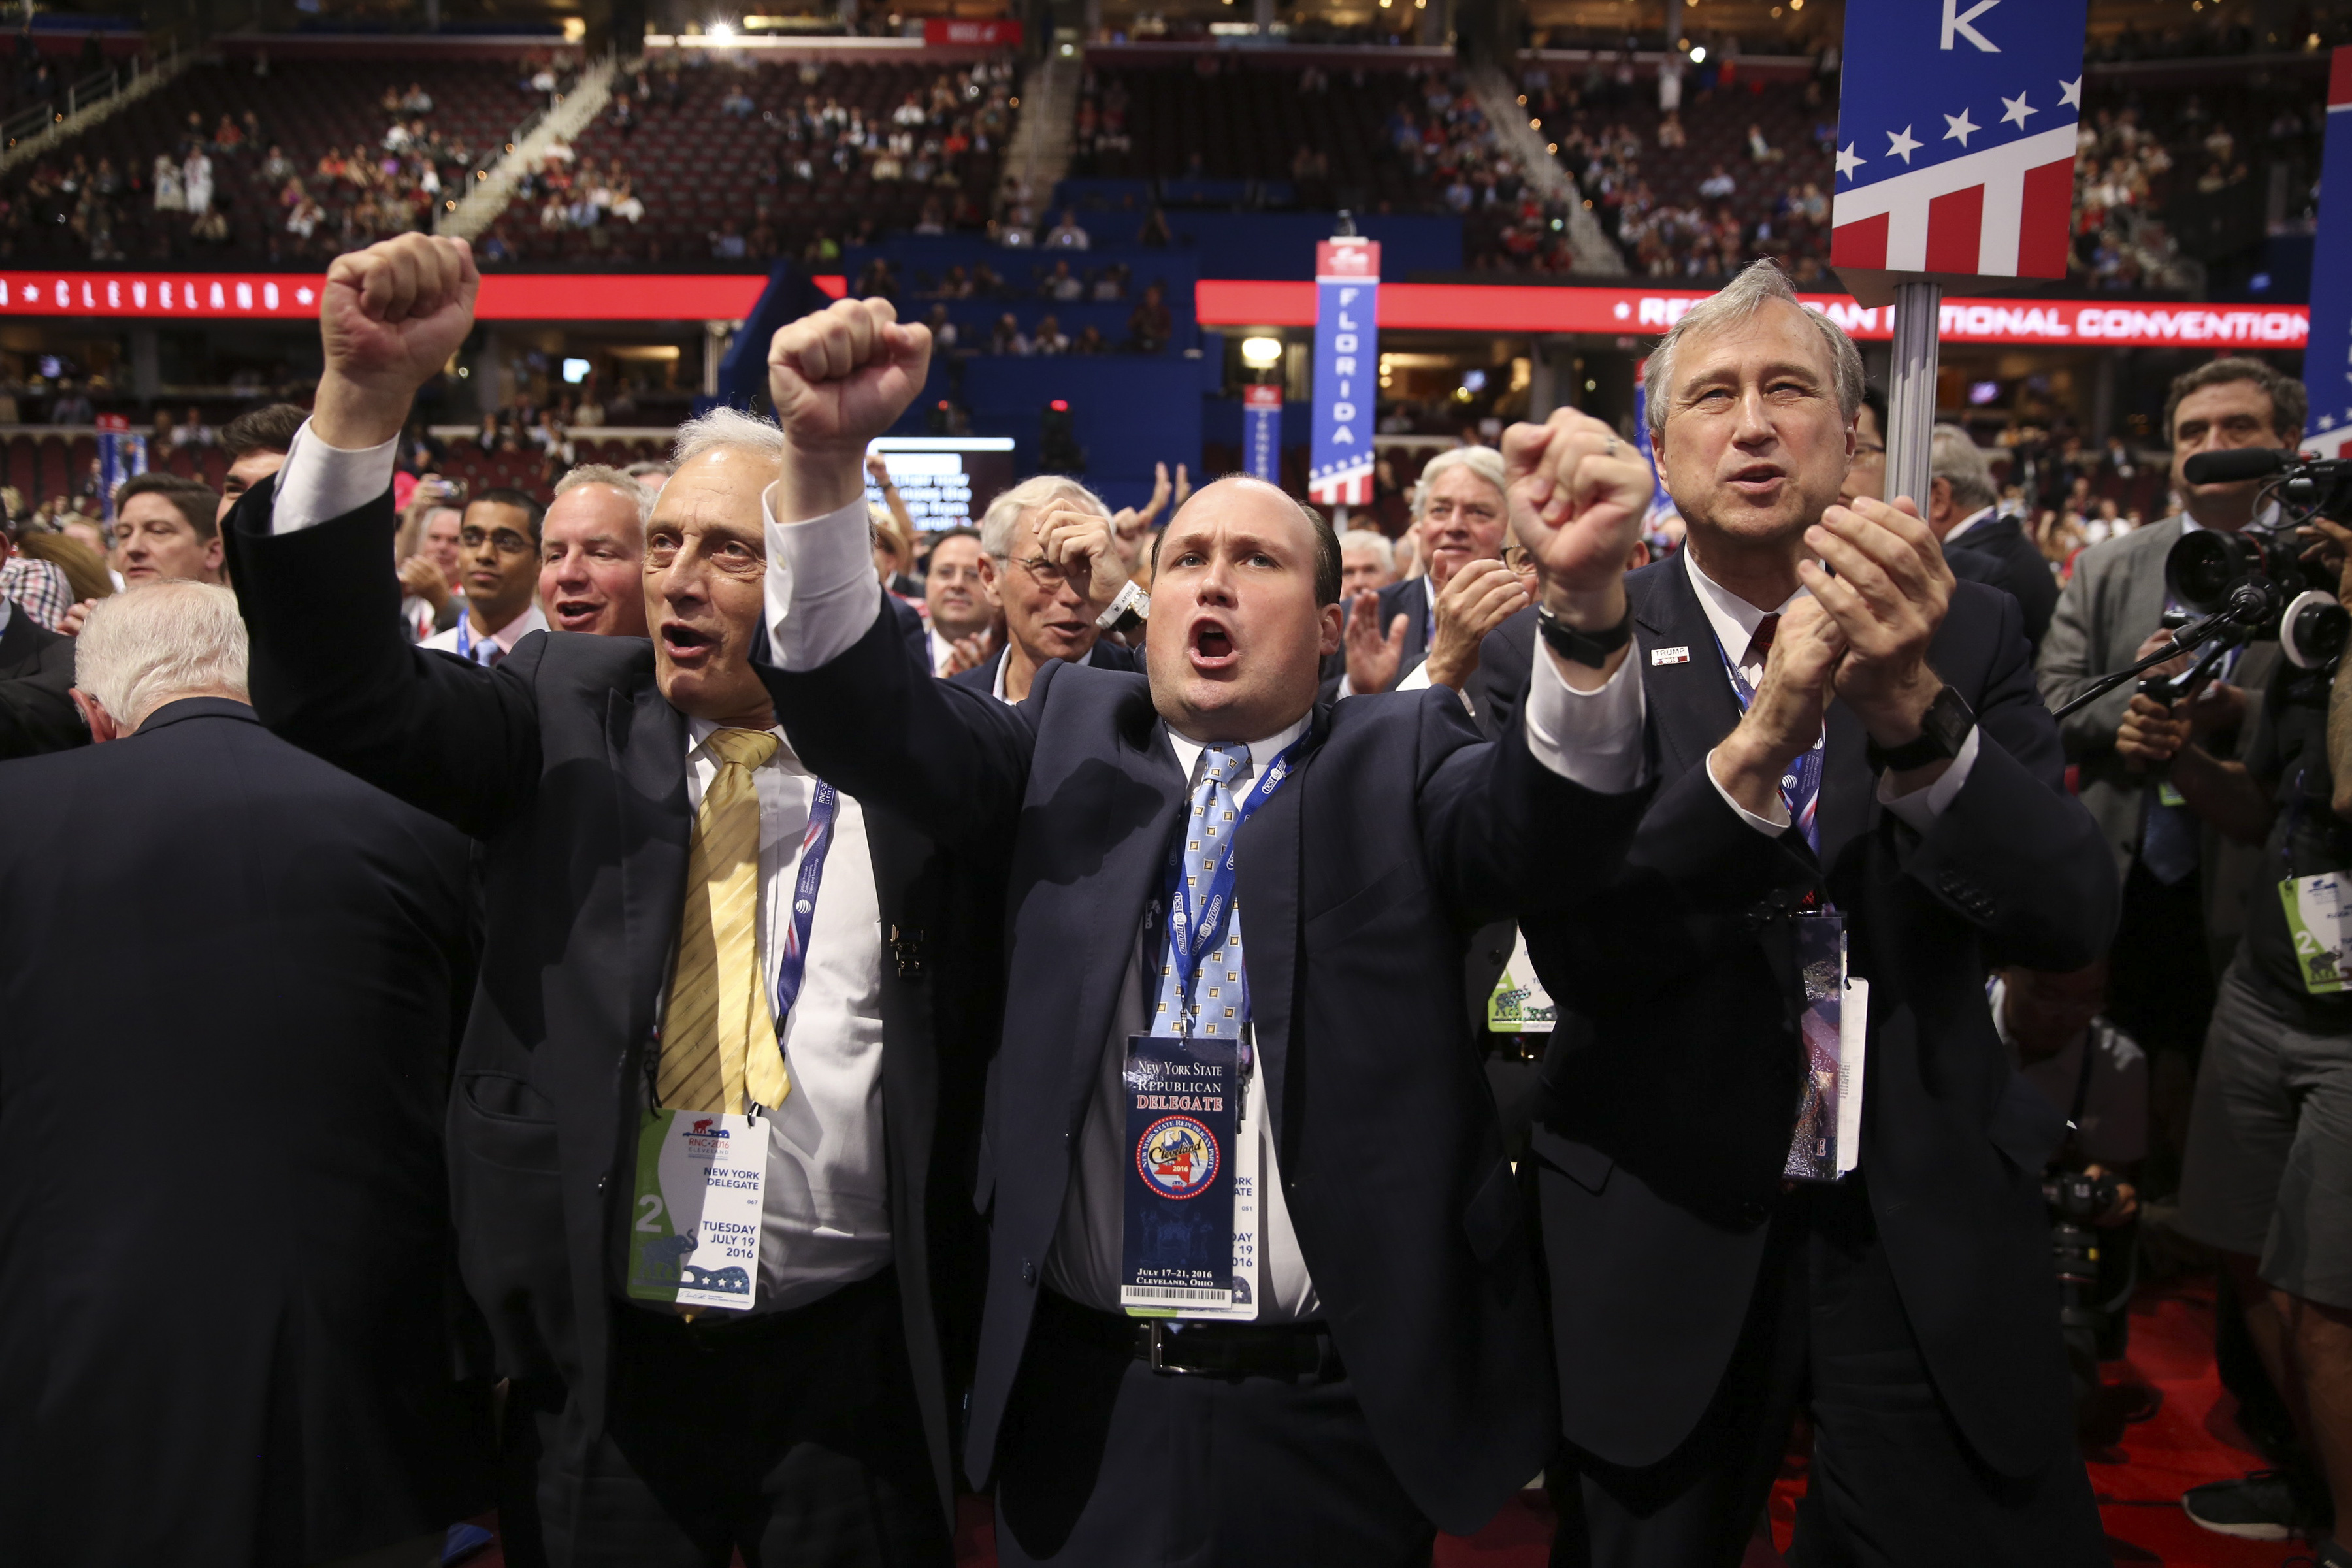 GOP leaders, conservatives at convention in talks over rules